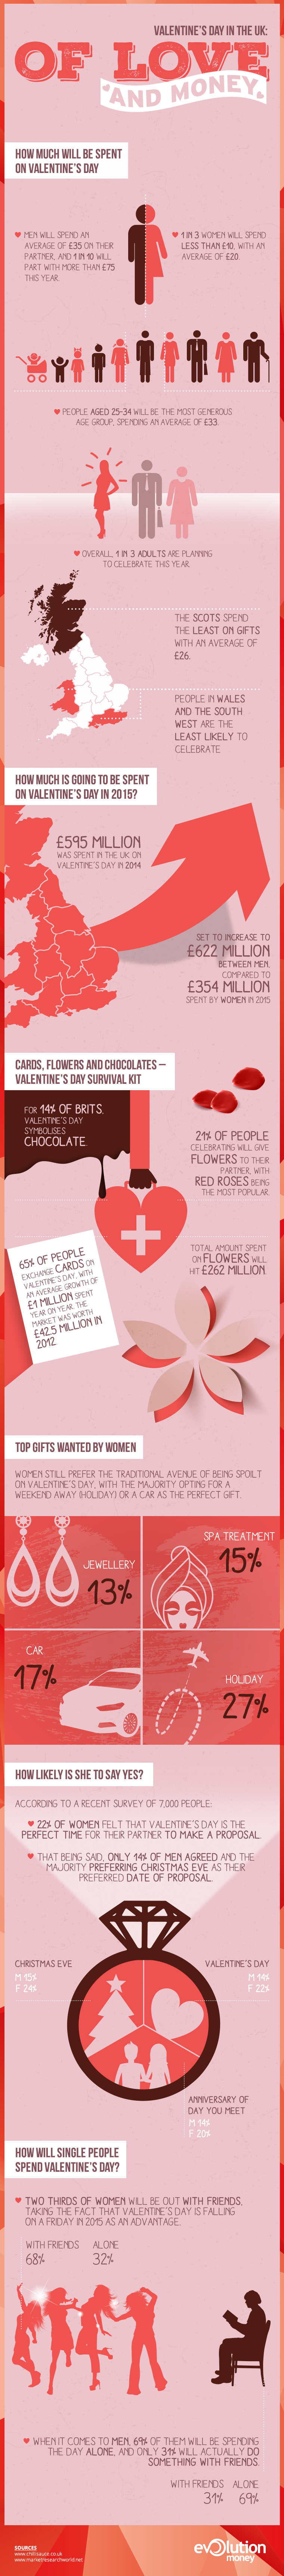 Infographic - Valentine's Day Survival Kit